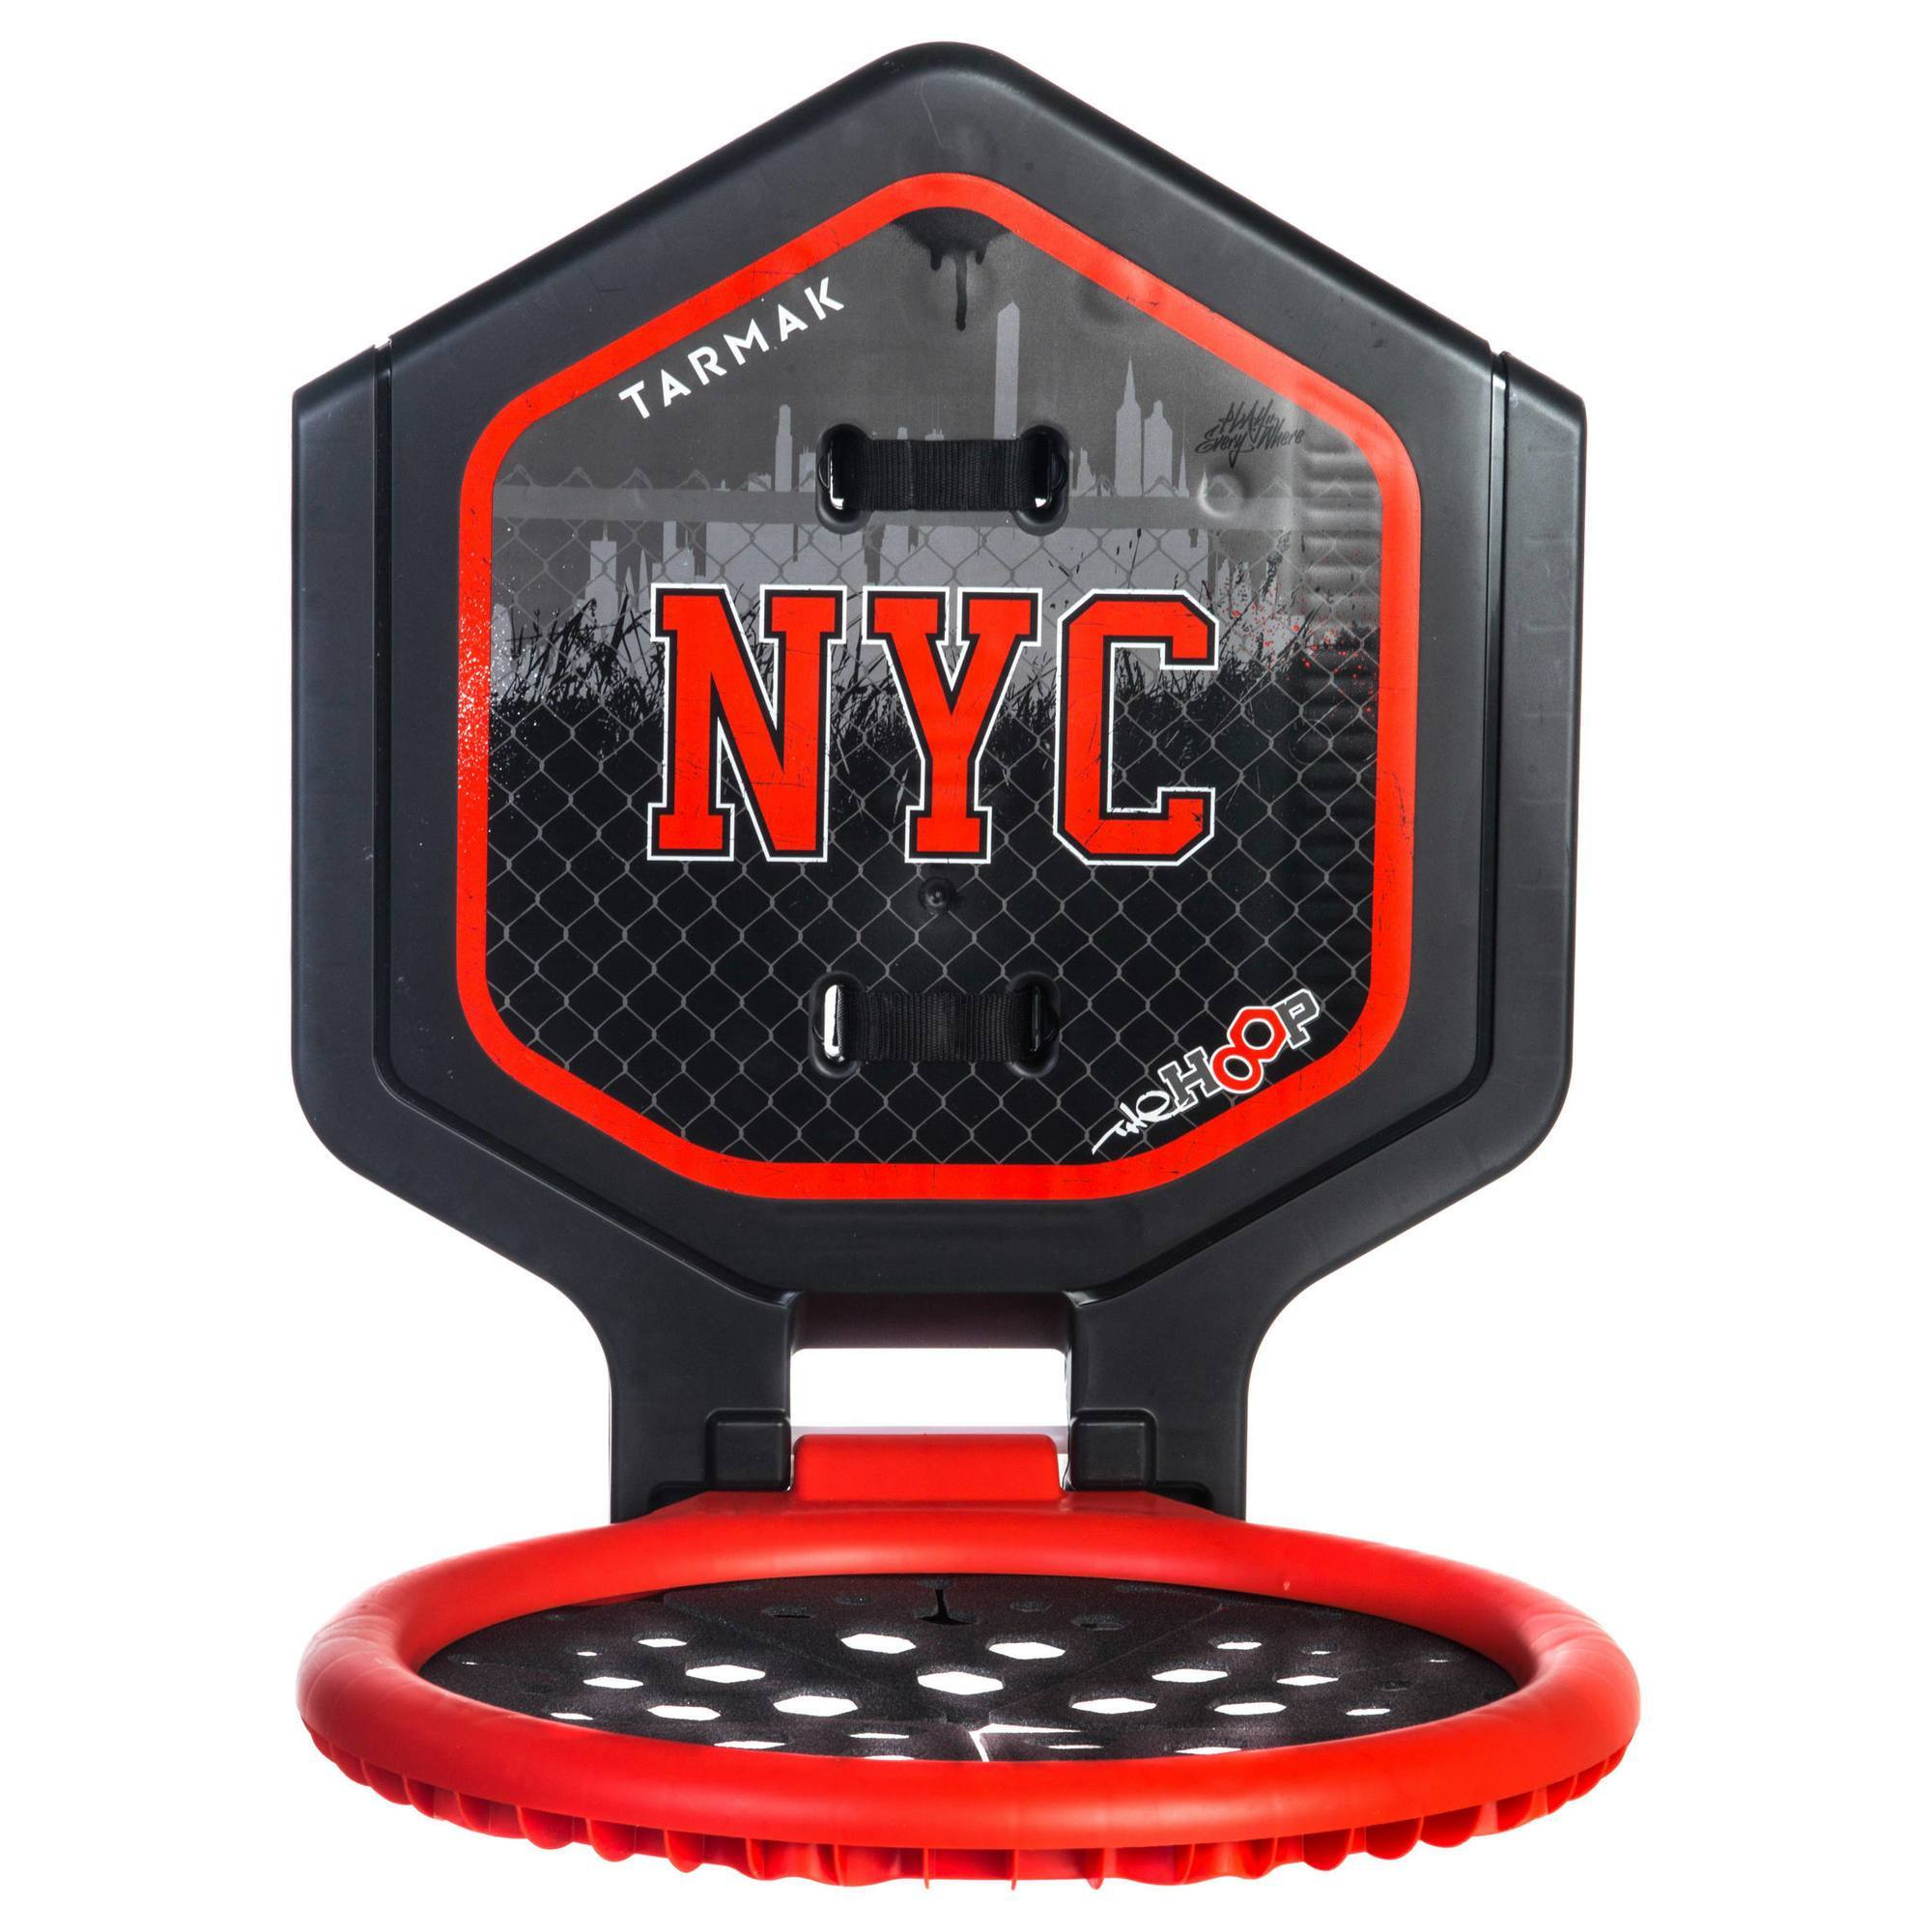 Panier de basket enfant/adulte THE HOOP NYC noir rouge. Transportable.